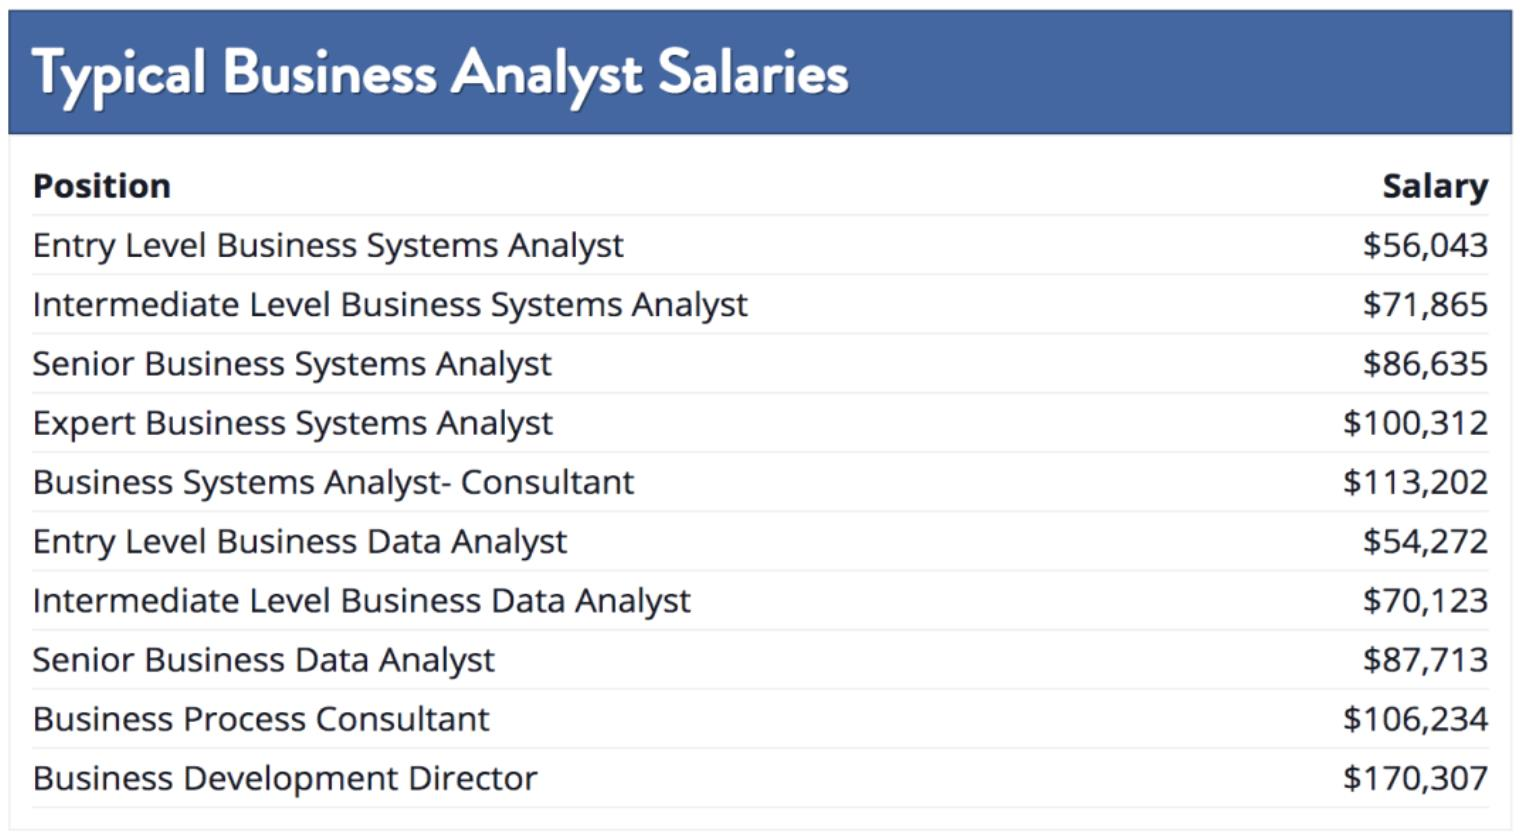 (Nguồn: Leah Davidson (2019), Which Industry Pays the Highest Data Analyst Salary?)